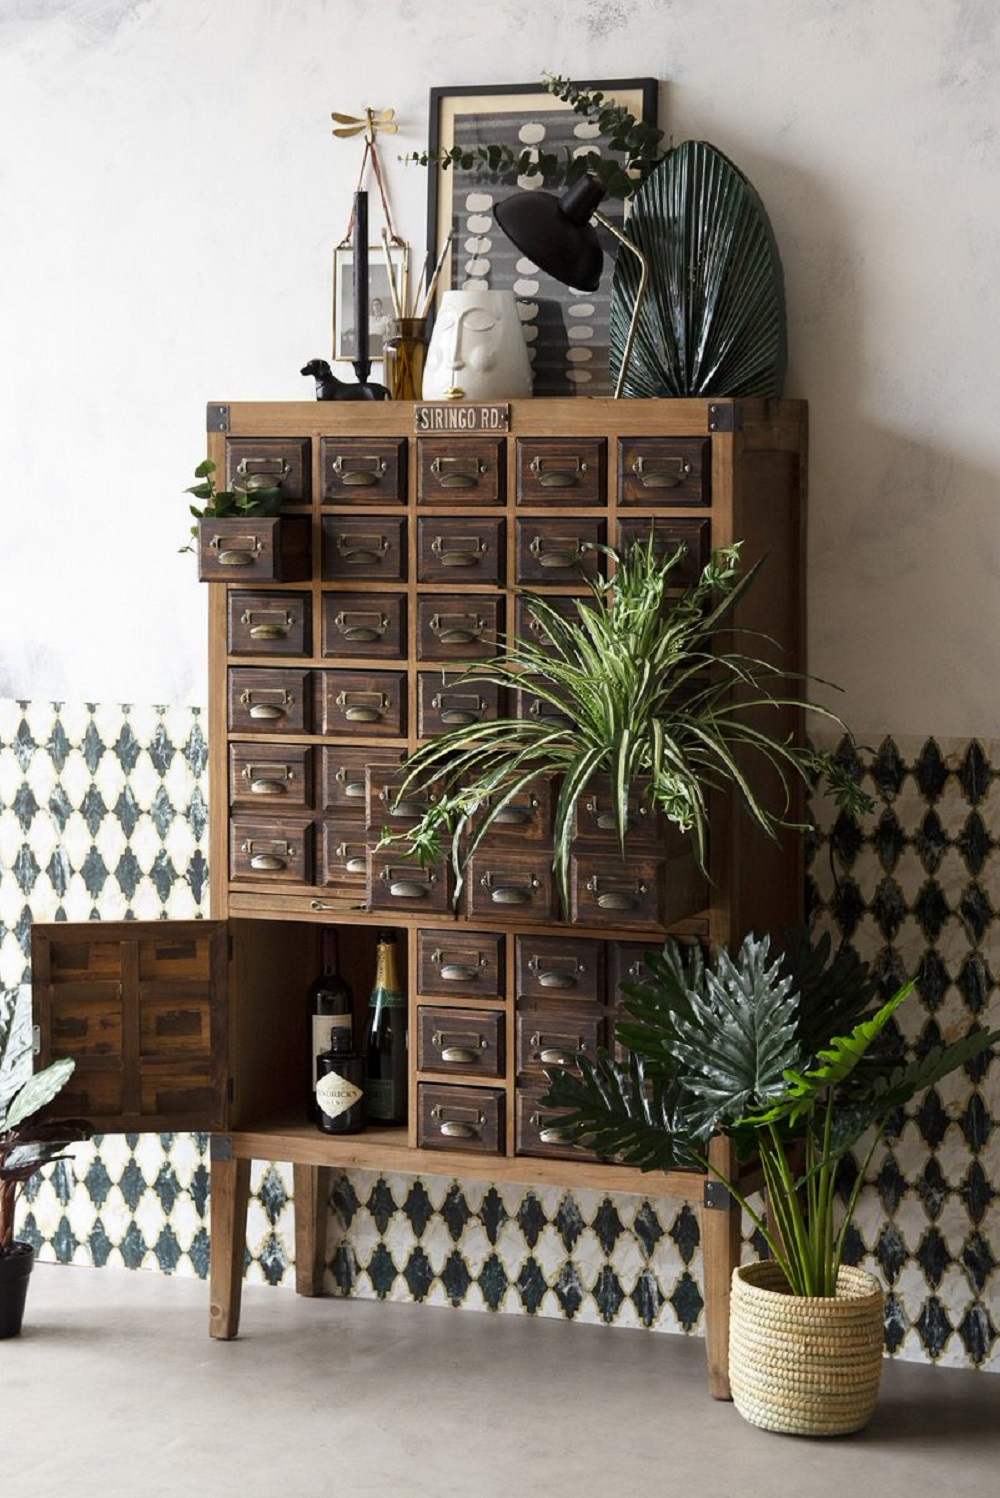 t3-66 How to use a vintage pharmacy cabinet in your home decor